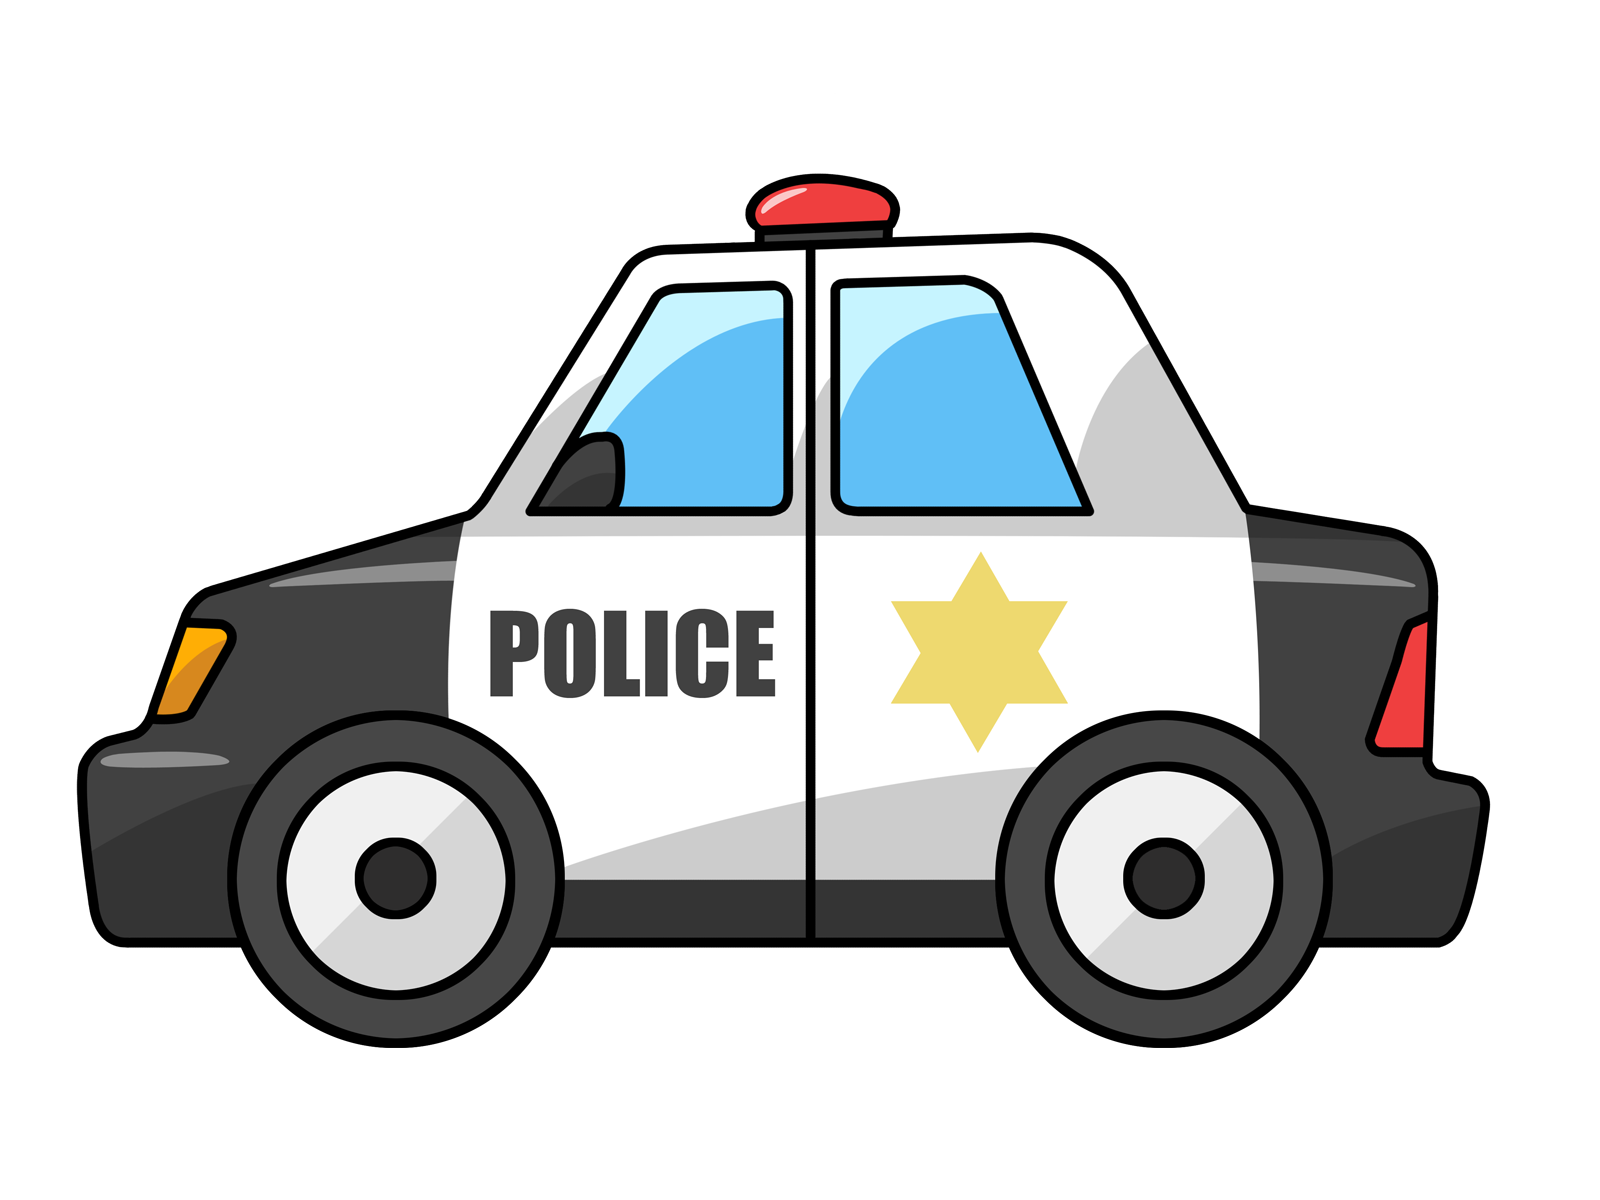 free to use public domain police car clip art clipart best rh pinterest com Full Car Clip Art Transparent Family Car Clip Art